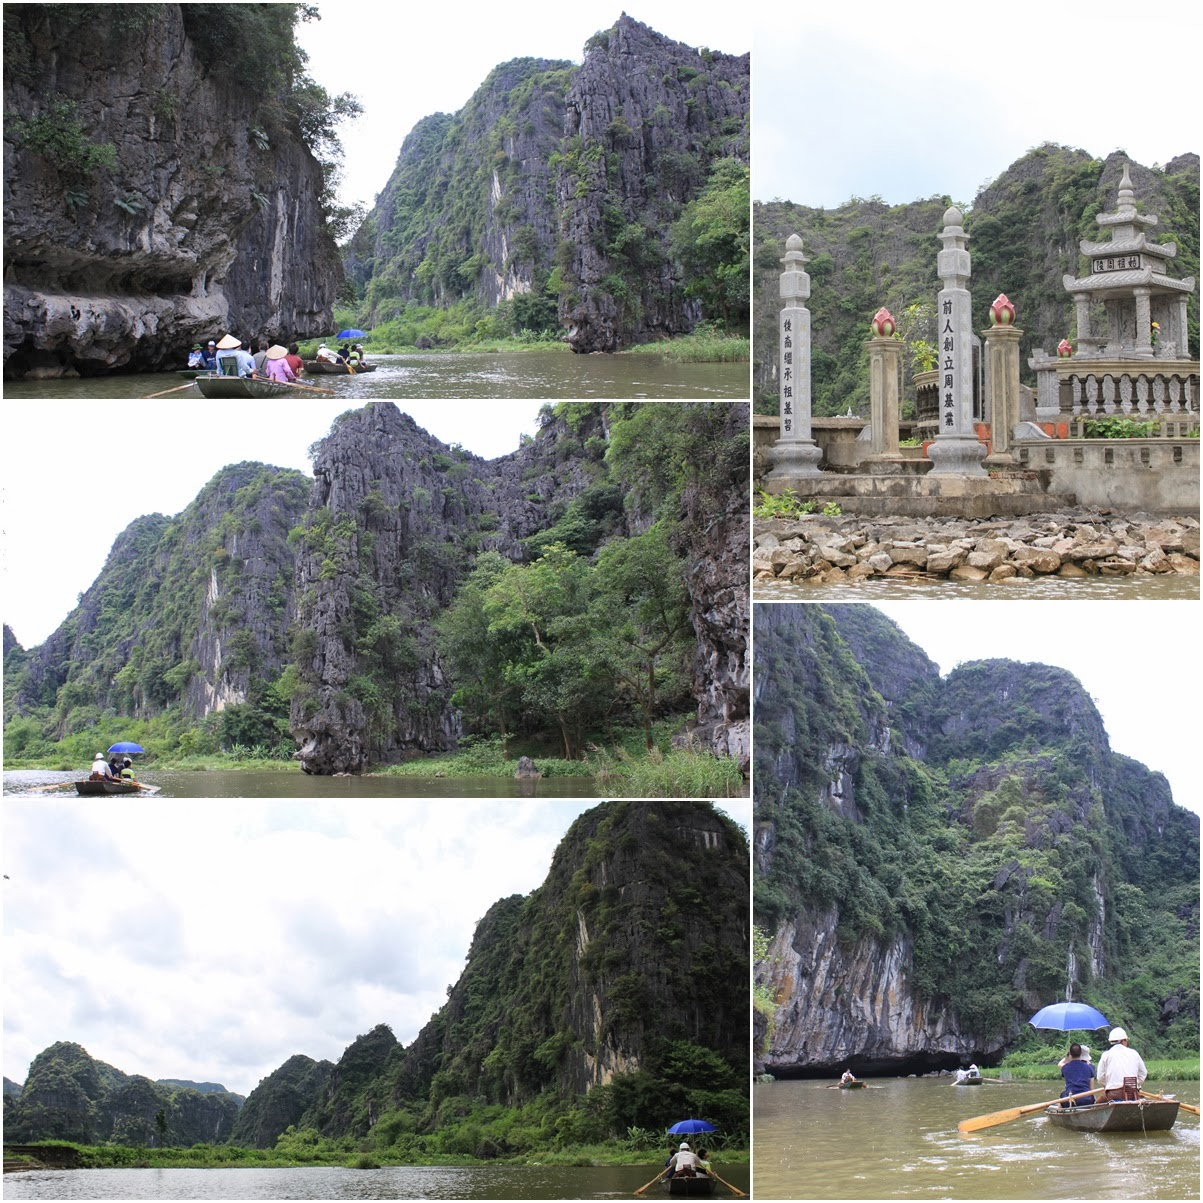 An enjoyable and breezing to see beautiful natural setting of paddy fields, rock formation, caves and landscape along Tam Coc river near the city of Ninh Bình in northern Vietnam